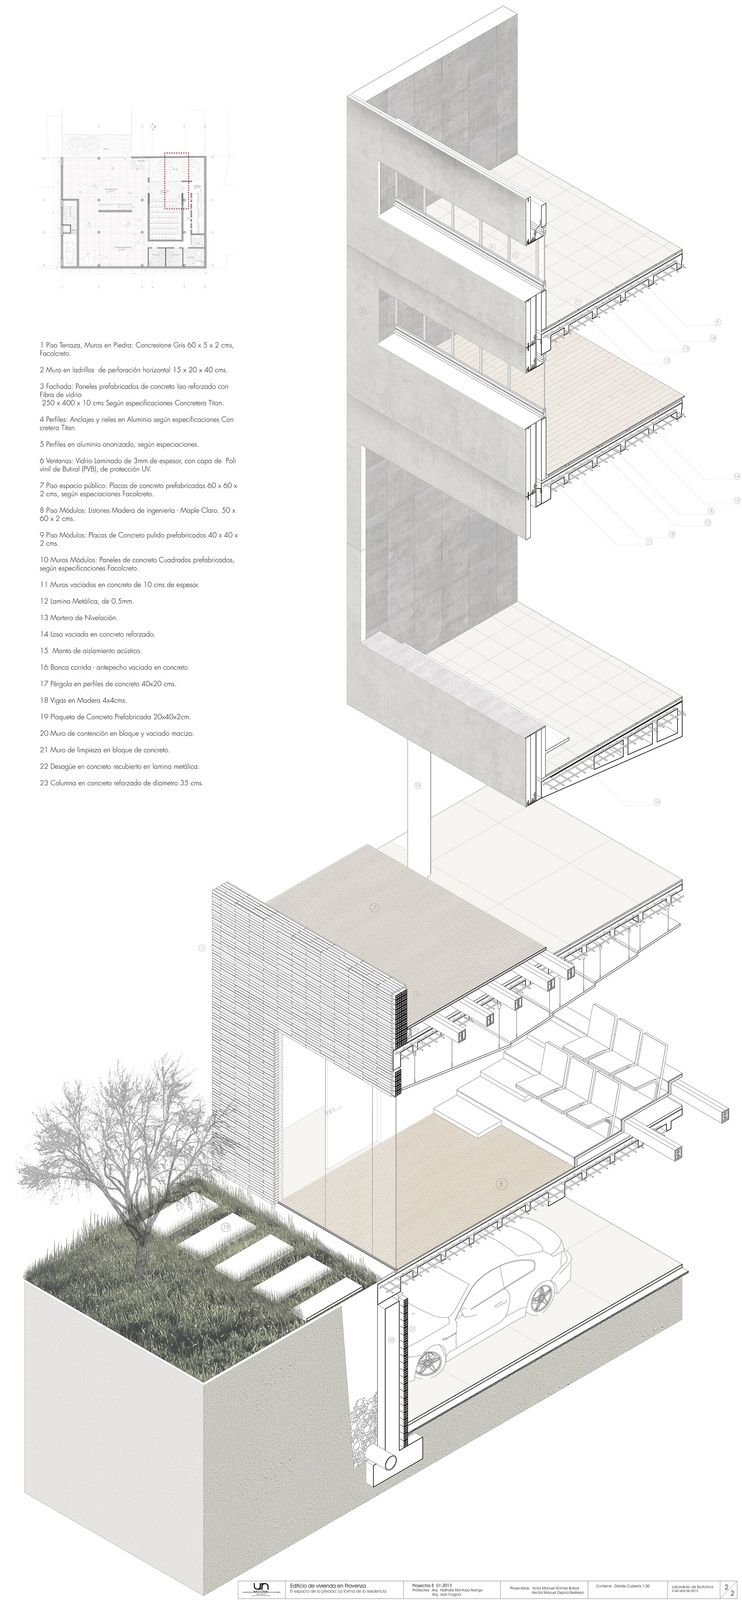 Explosion Diagram Pinterest Architectural Drawings And Architecture